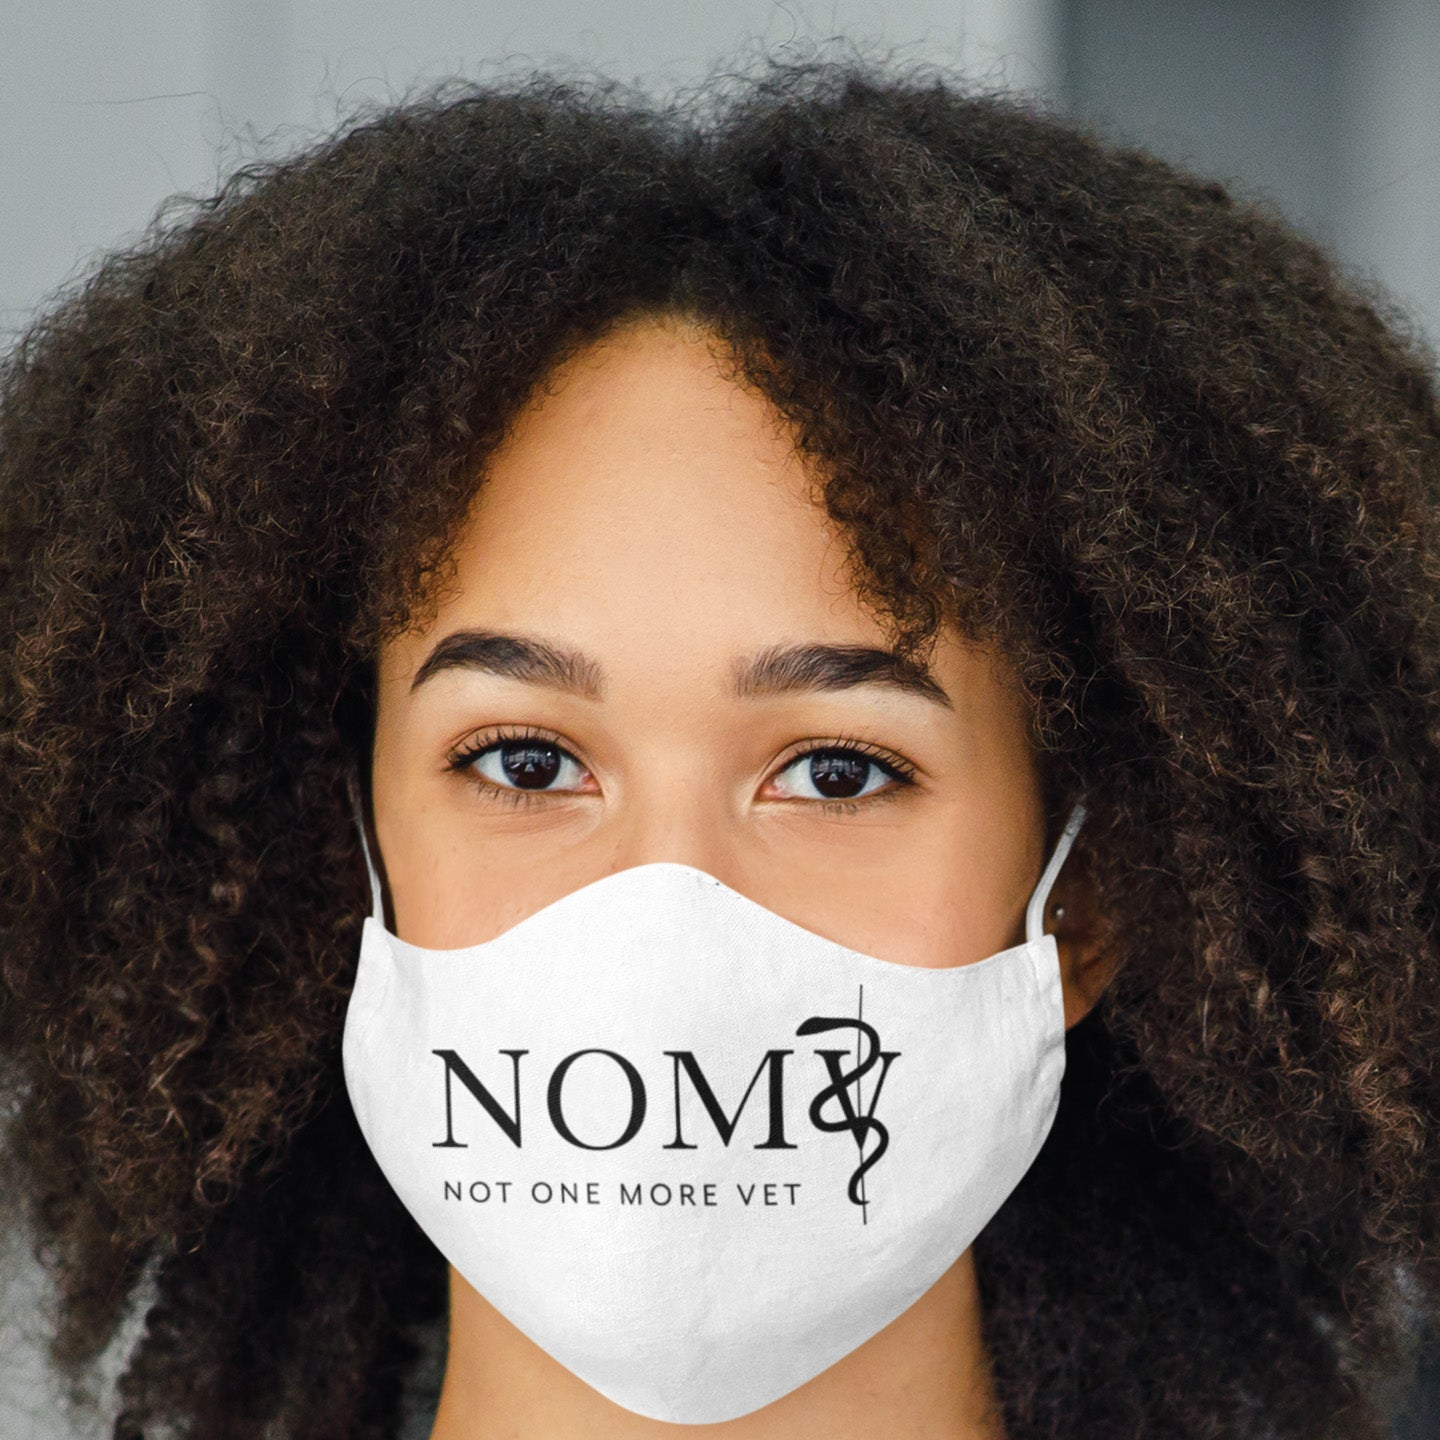 NOMV black logo Sublimation Face Mask-NOMV Sublimation Face Mask-I love Veterinary